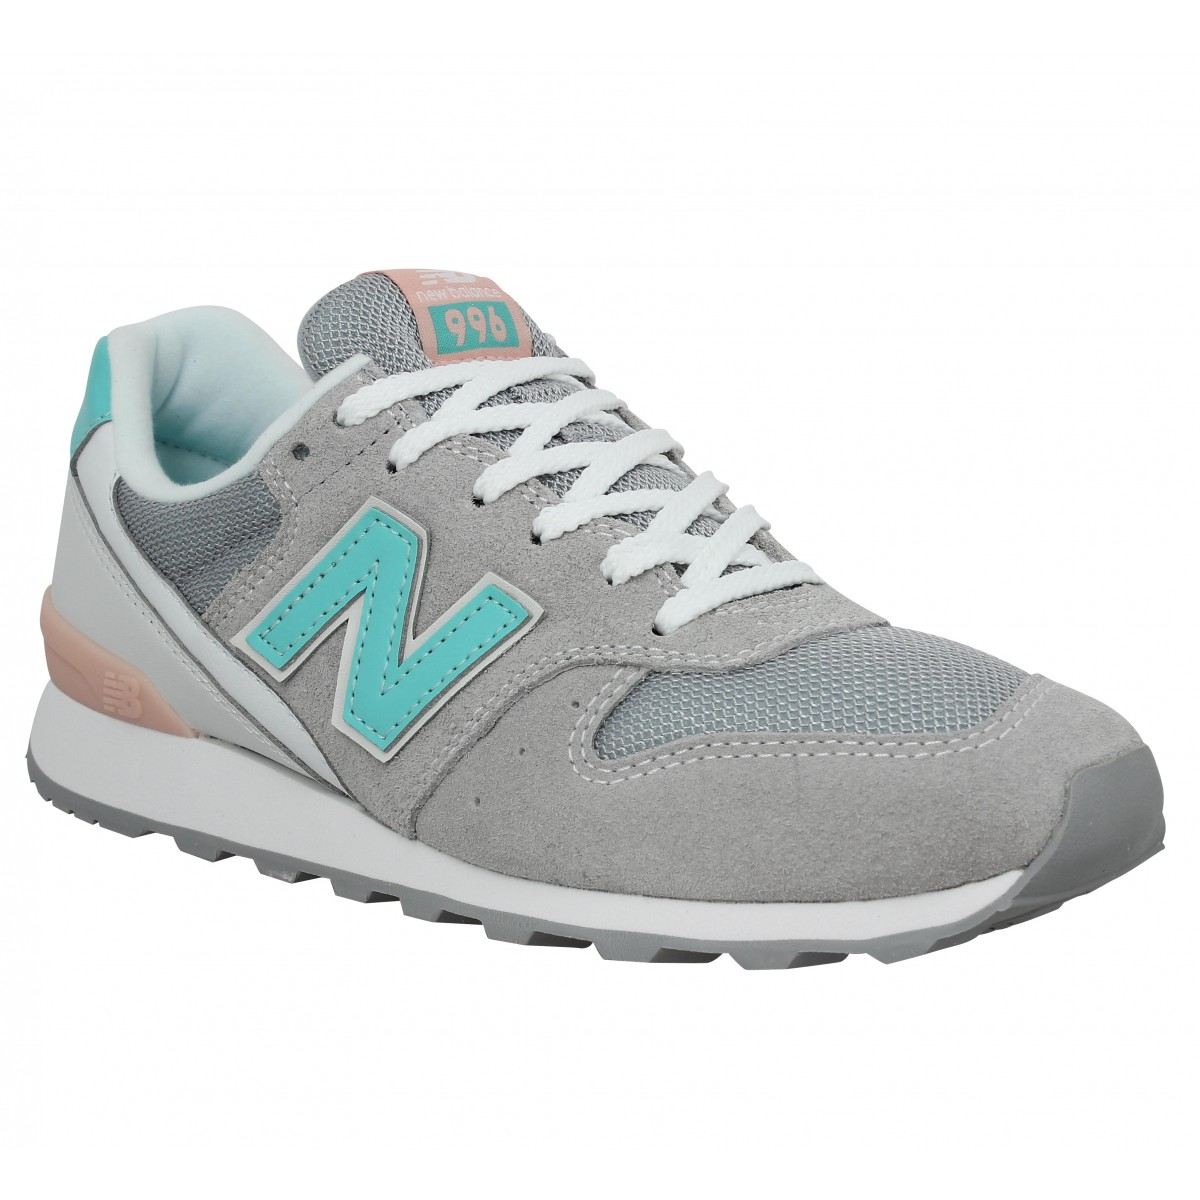 Baskets NEW BALANCE 996 velours + toile Silver